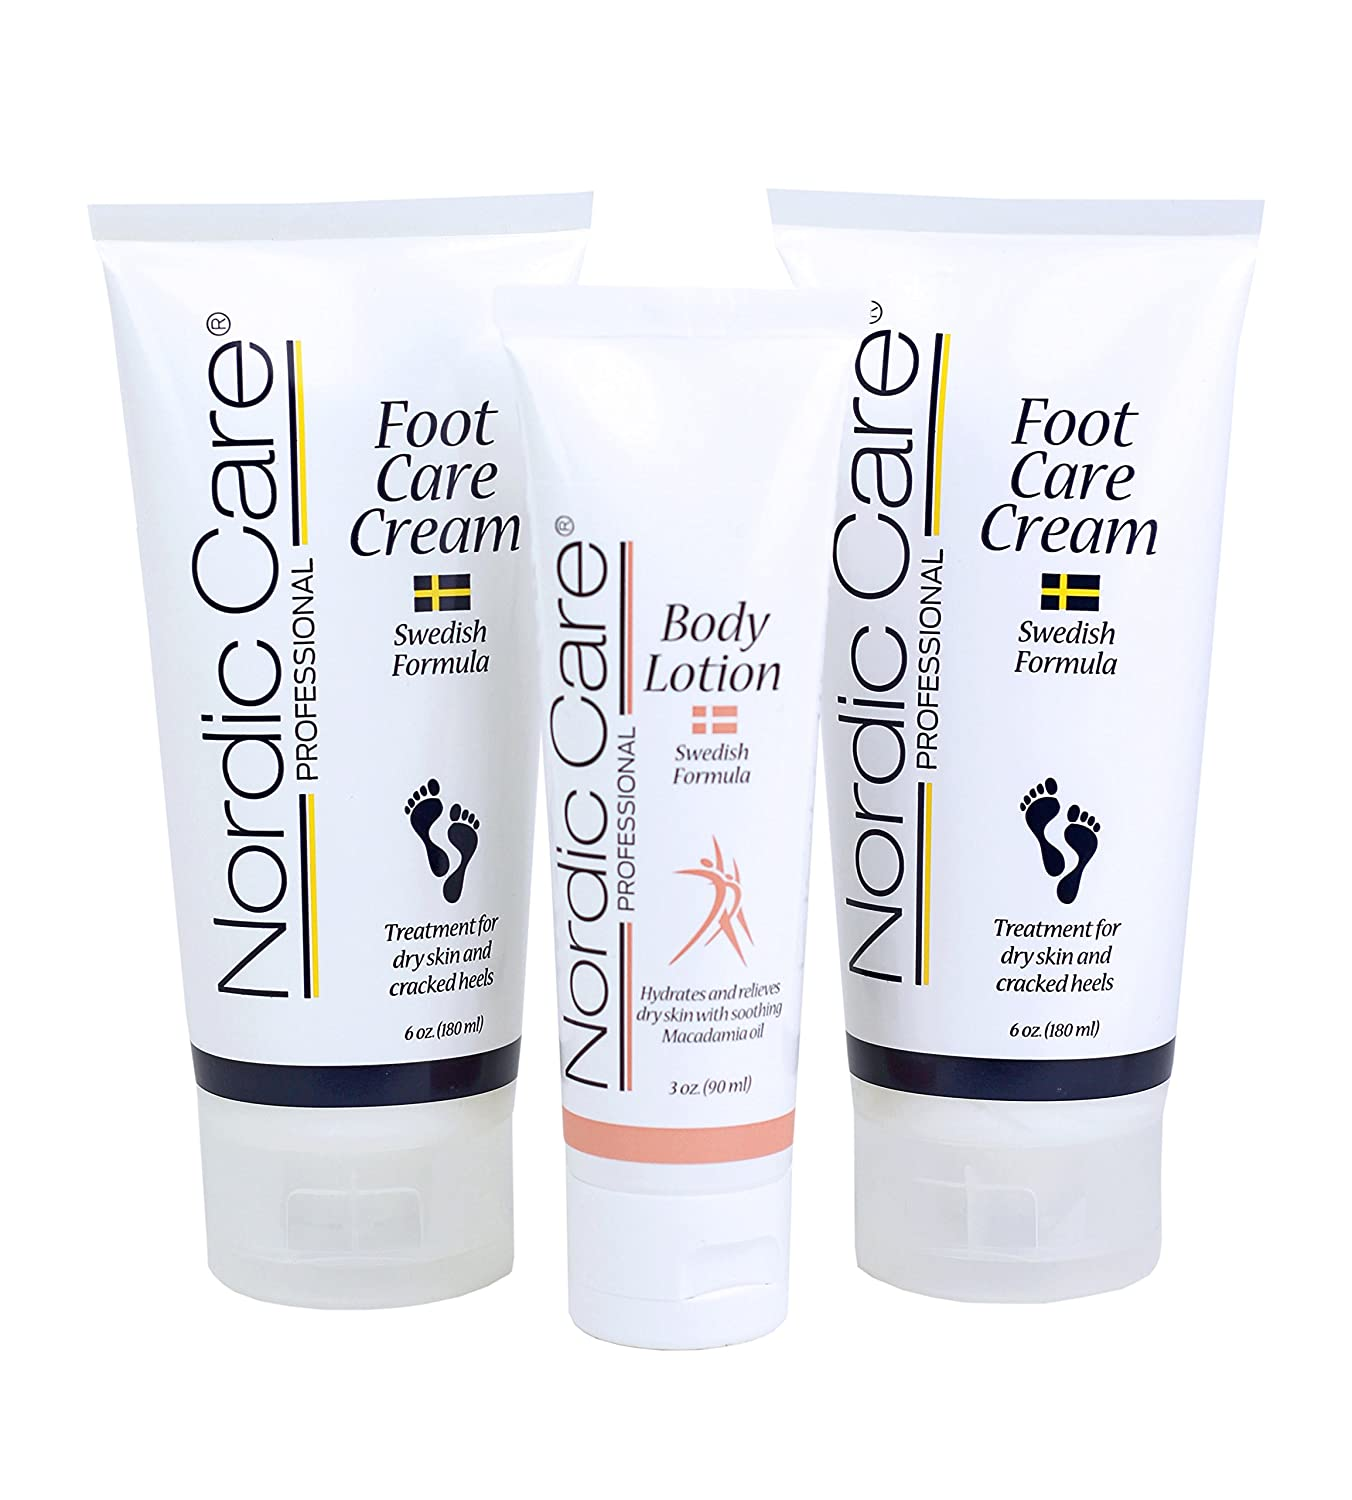 Nordic Care Foot Care Cream 6 oz. (Pack of 2) Plus Body Lotion